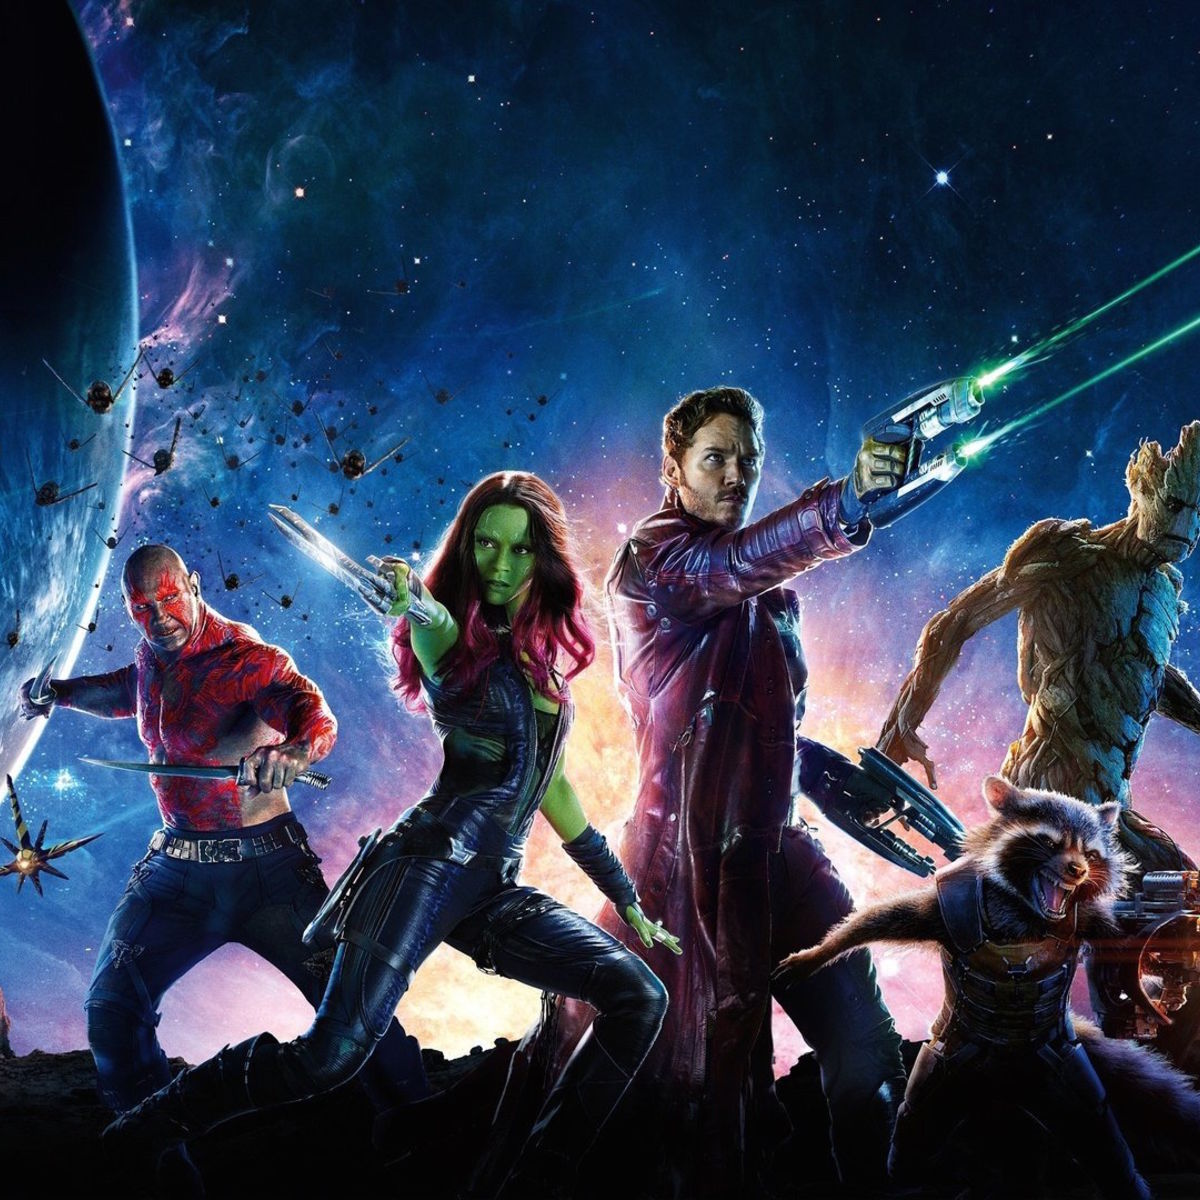 Guardians-of-The-Galaxy-Movie-Images.jpg